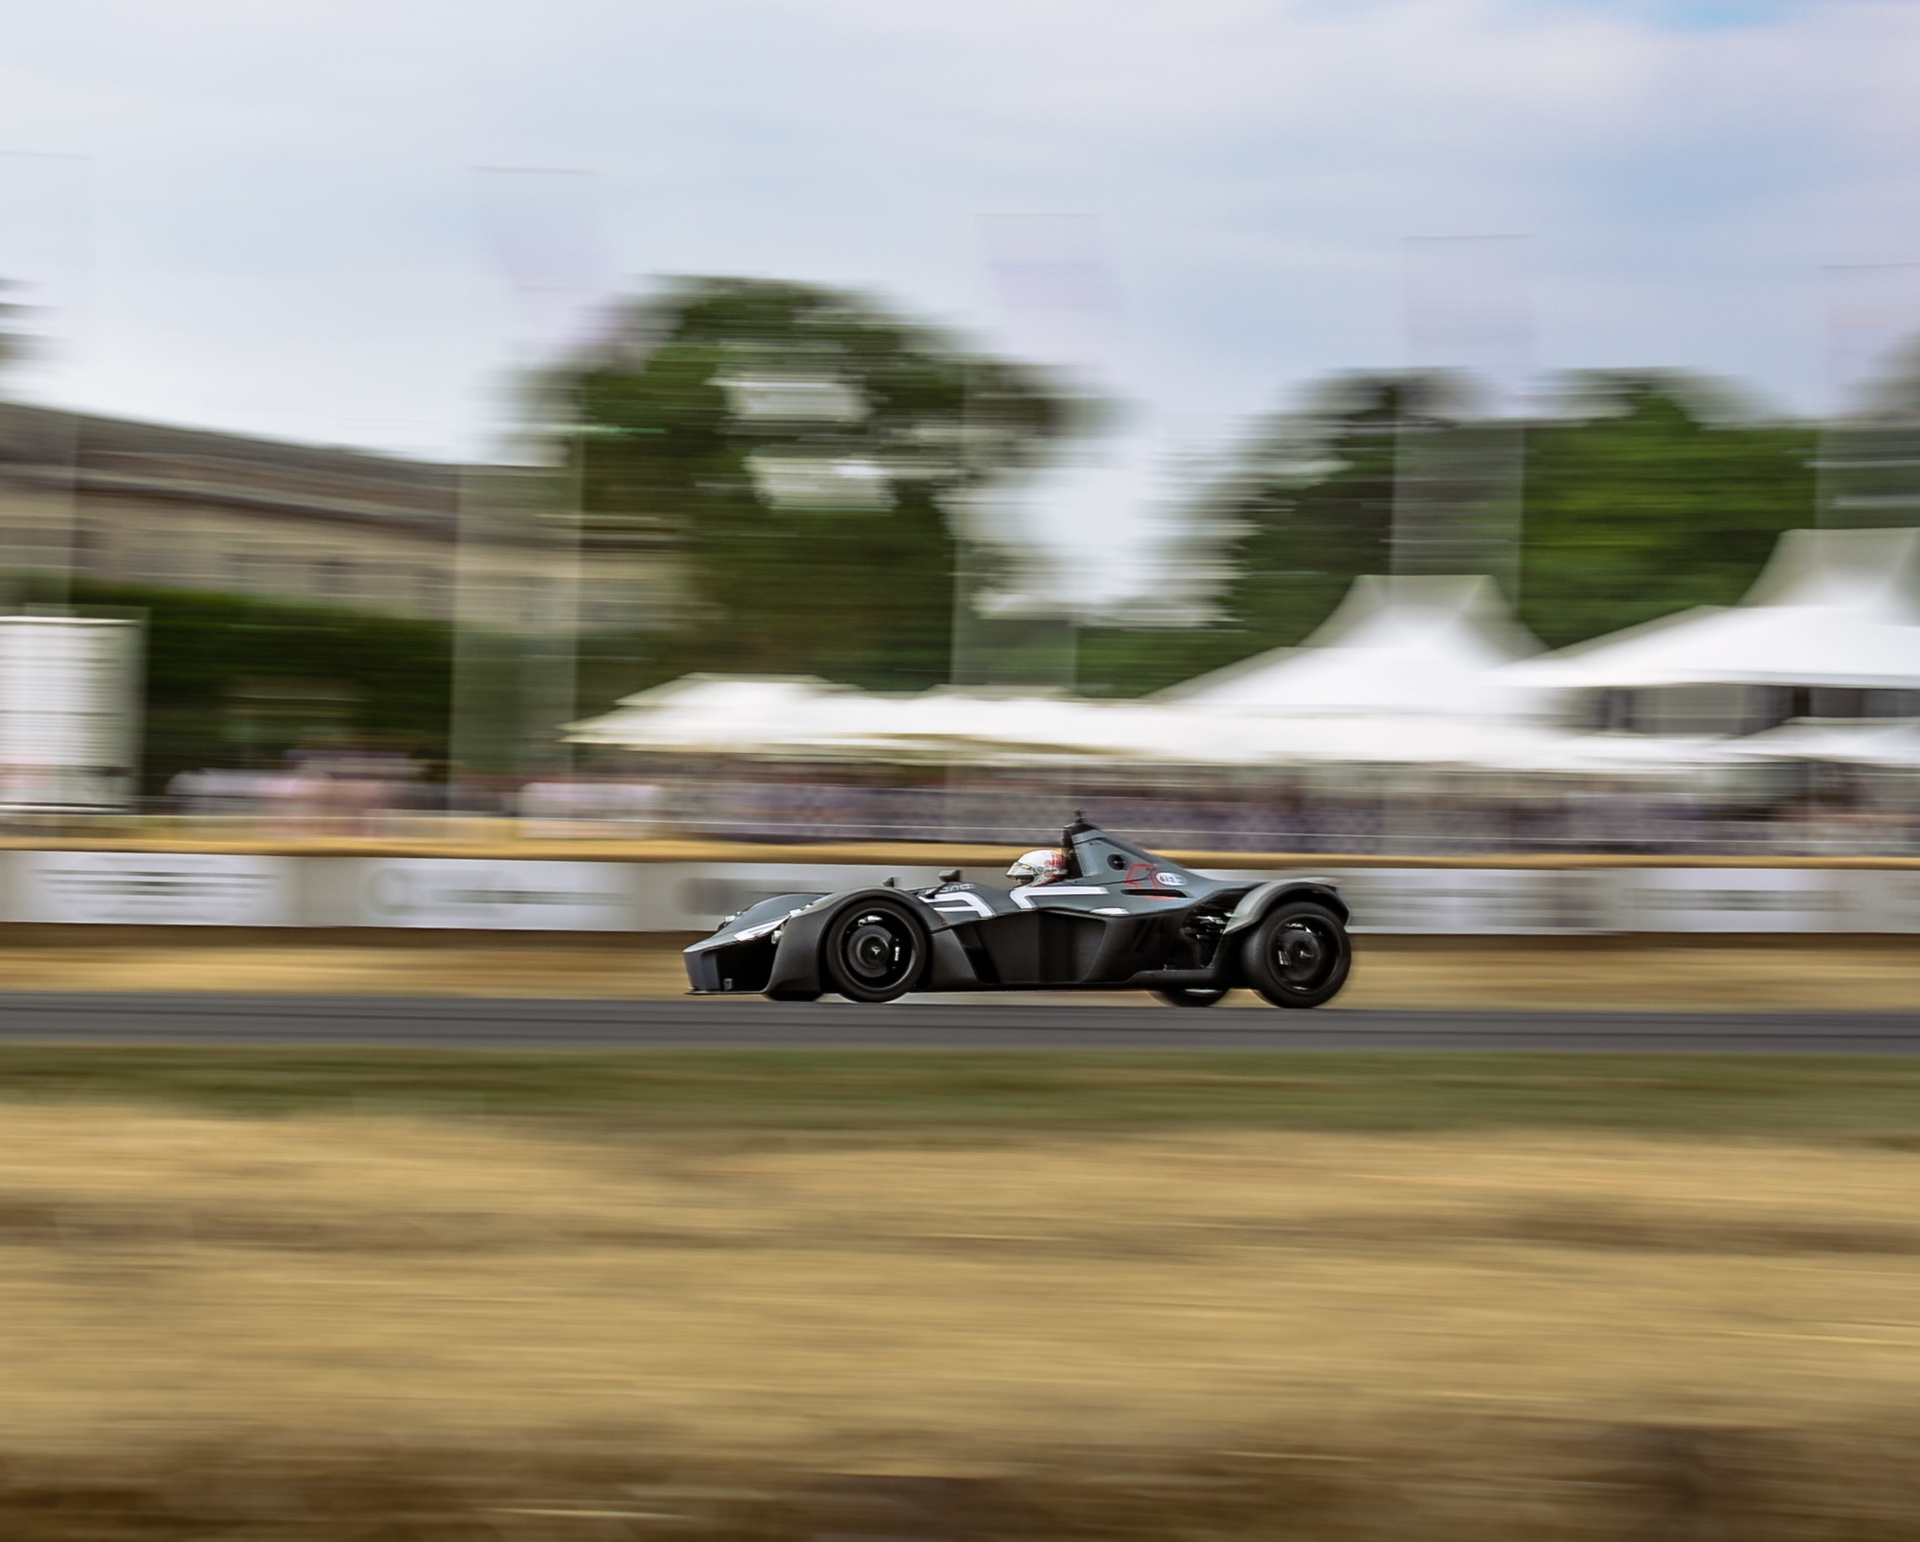 BAC_Mono_Goodwood_Hillclimb_Record_0002